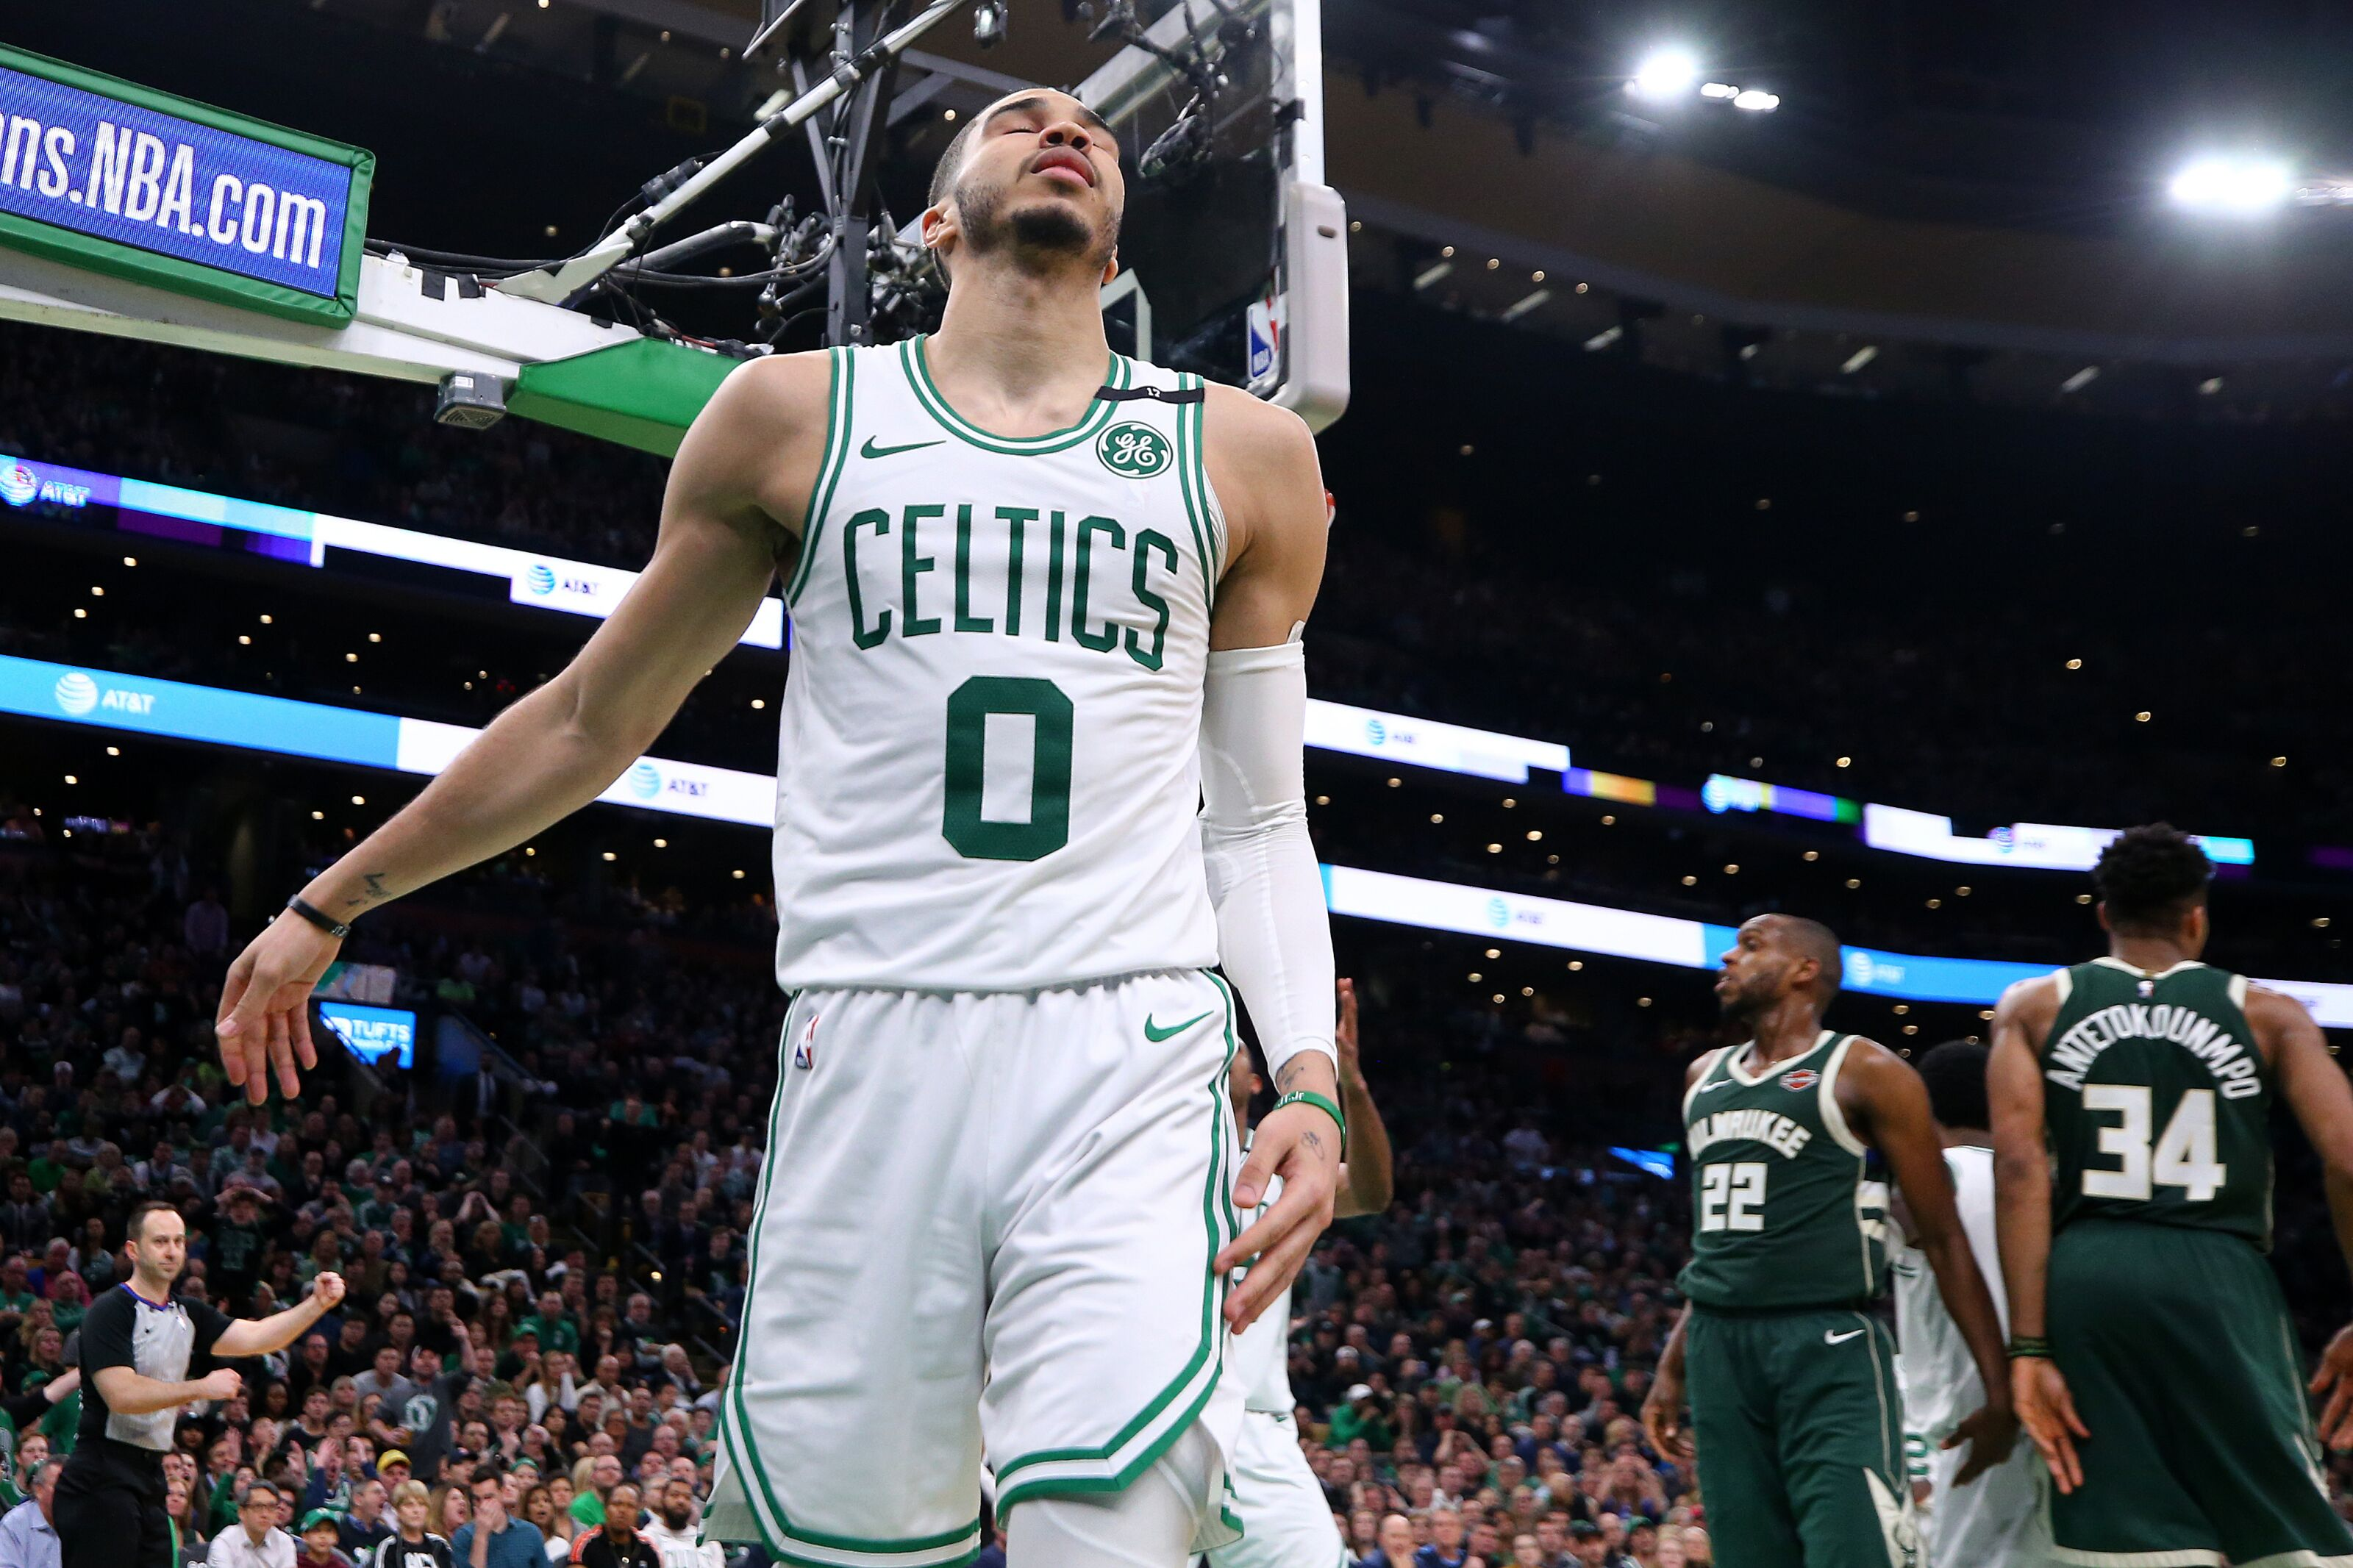 Jayson Tatum signs with Jordan Brand - Under the Laces